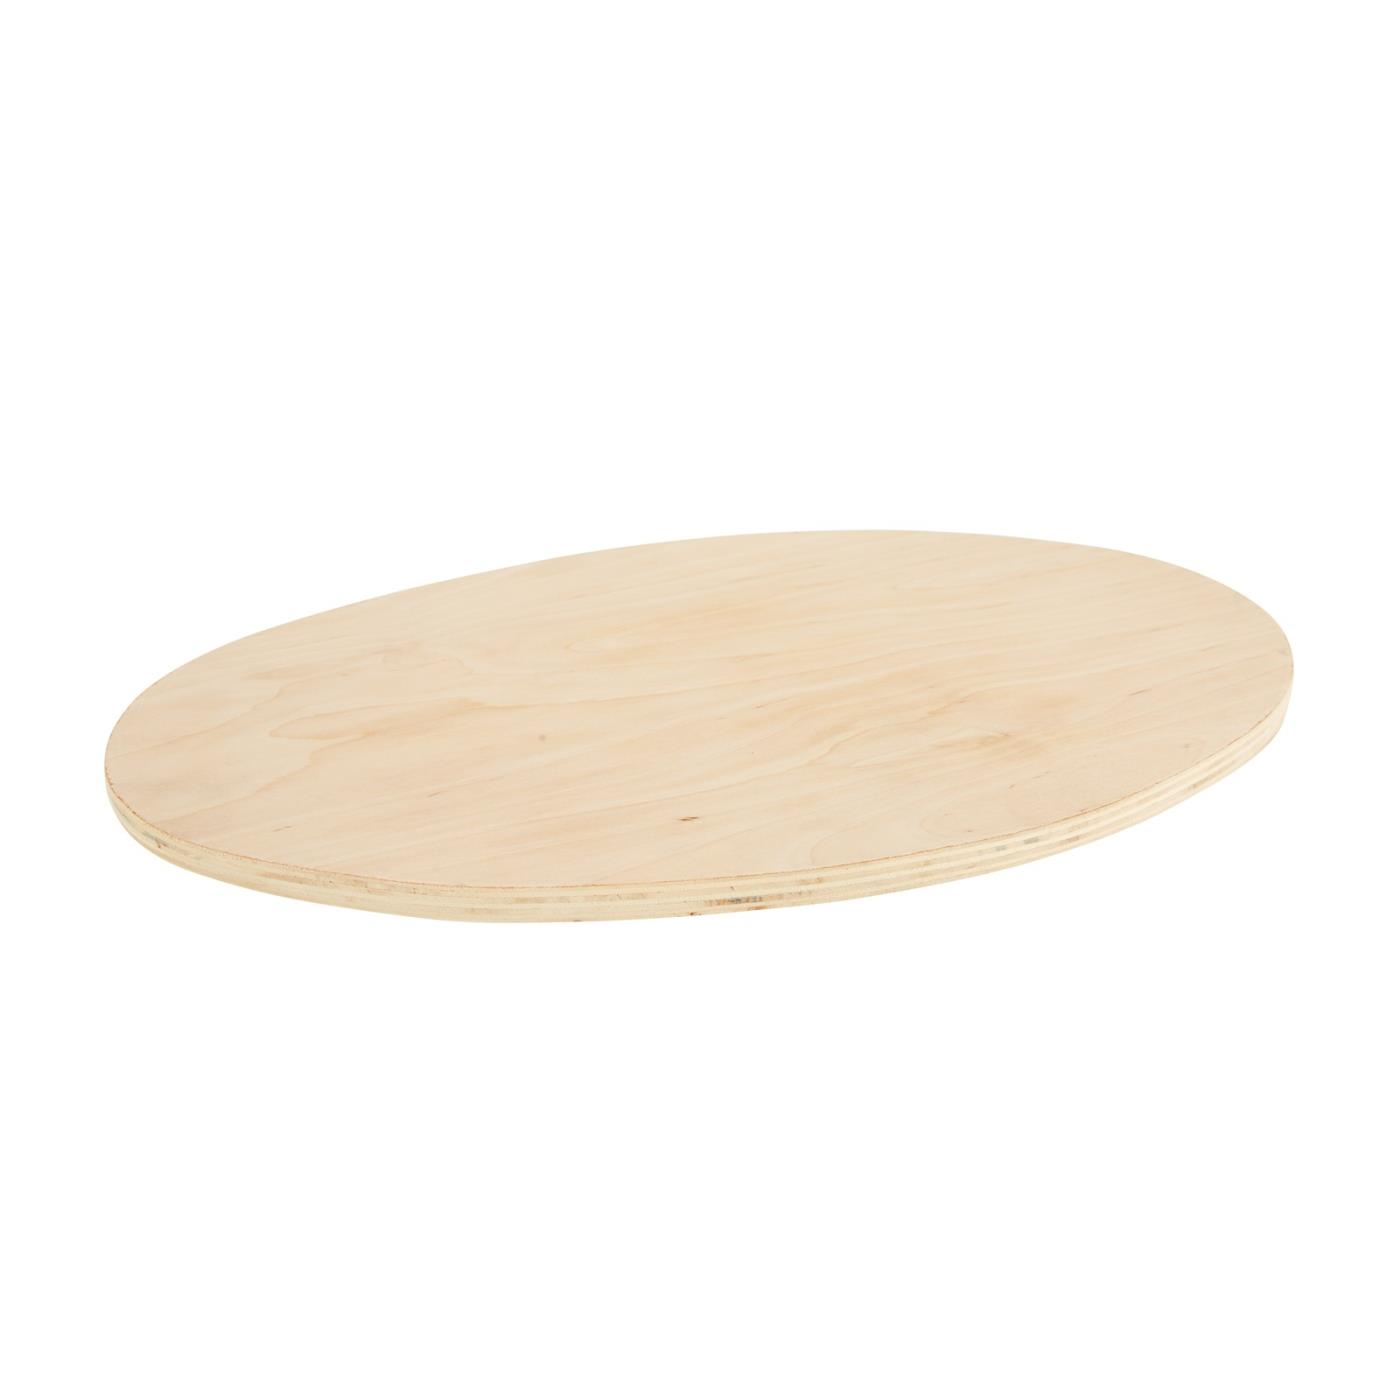 Wood Cutting Board For Silver Oval Tray